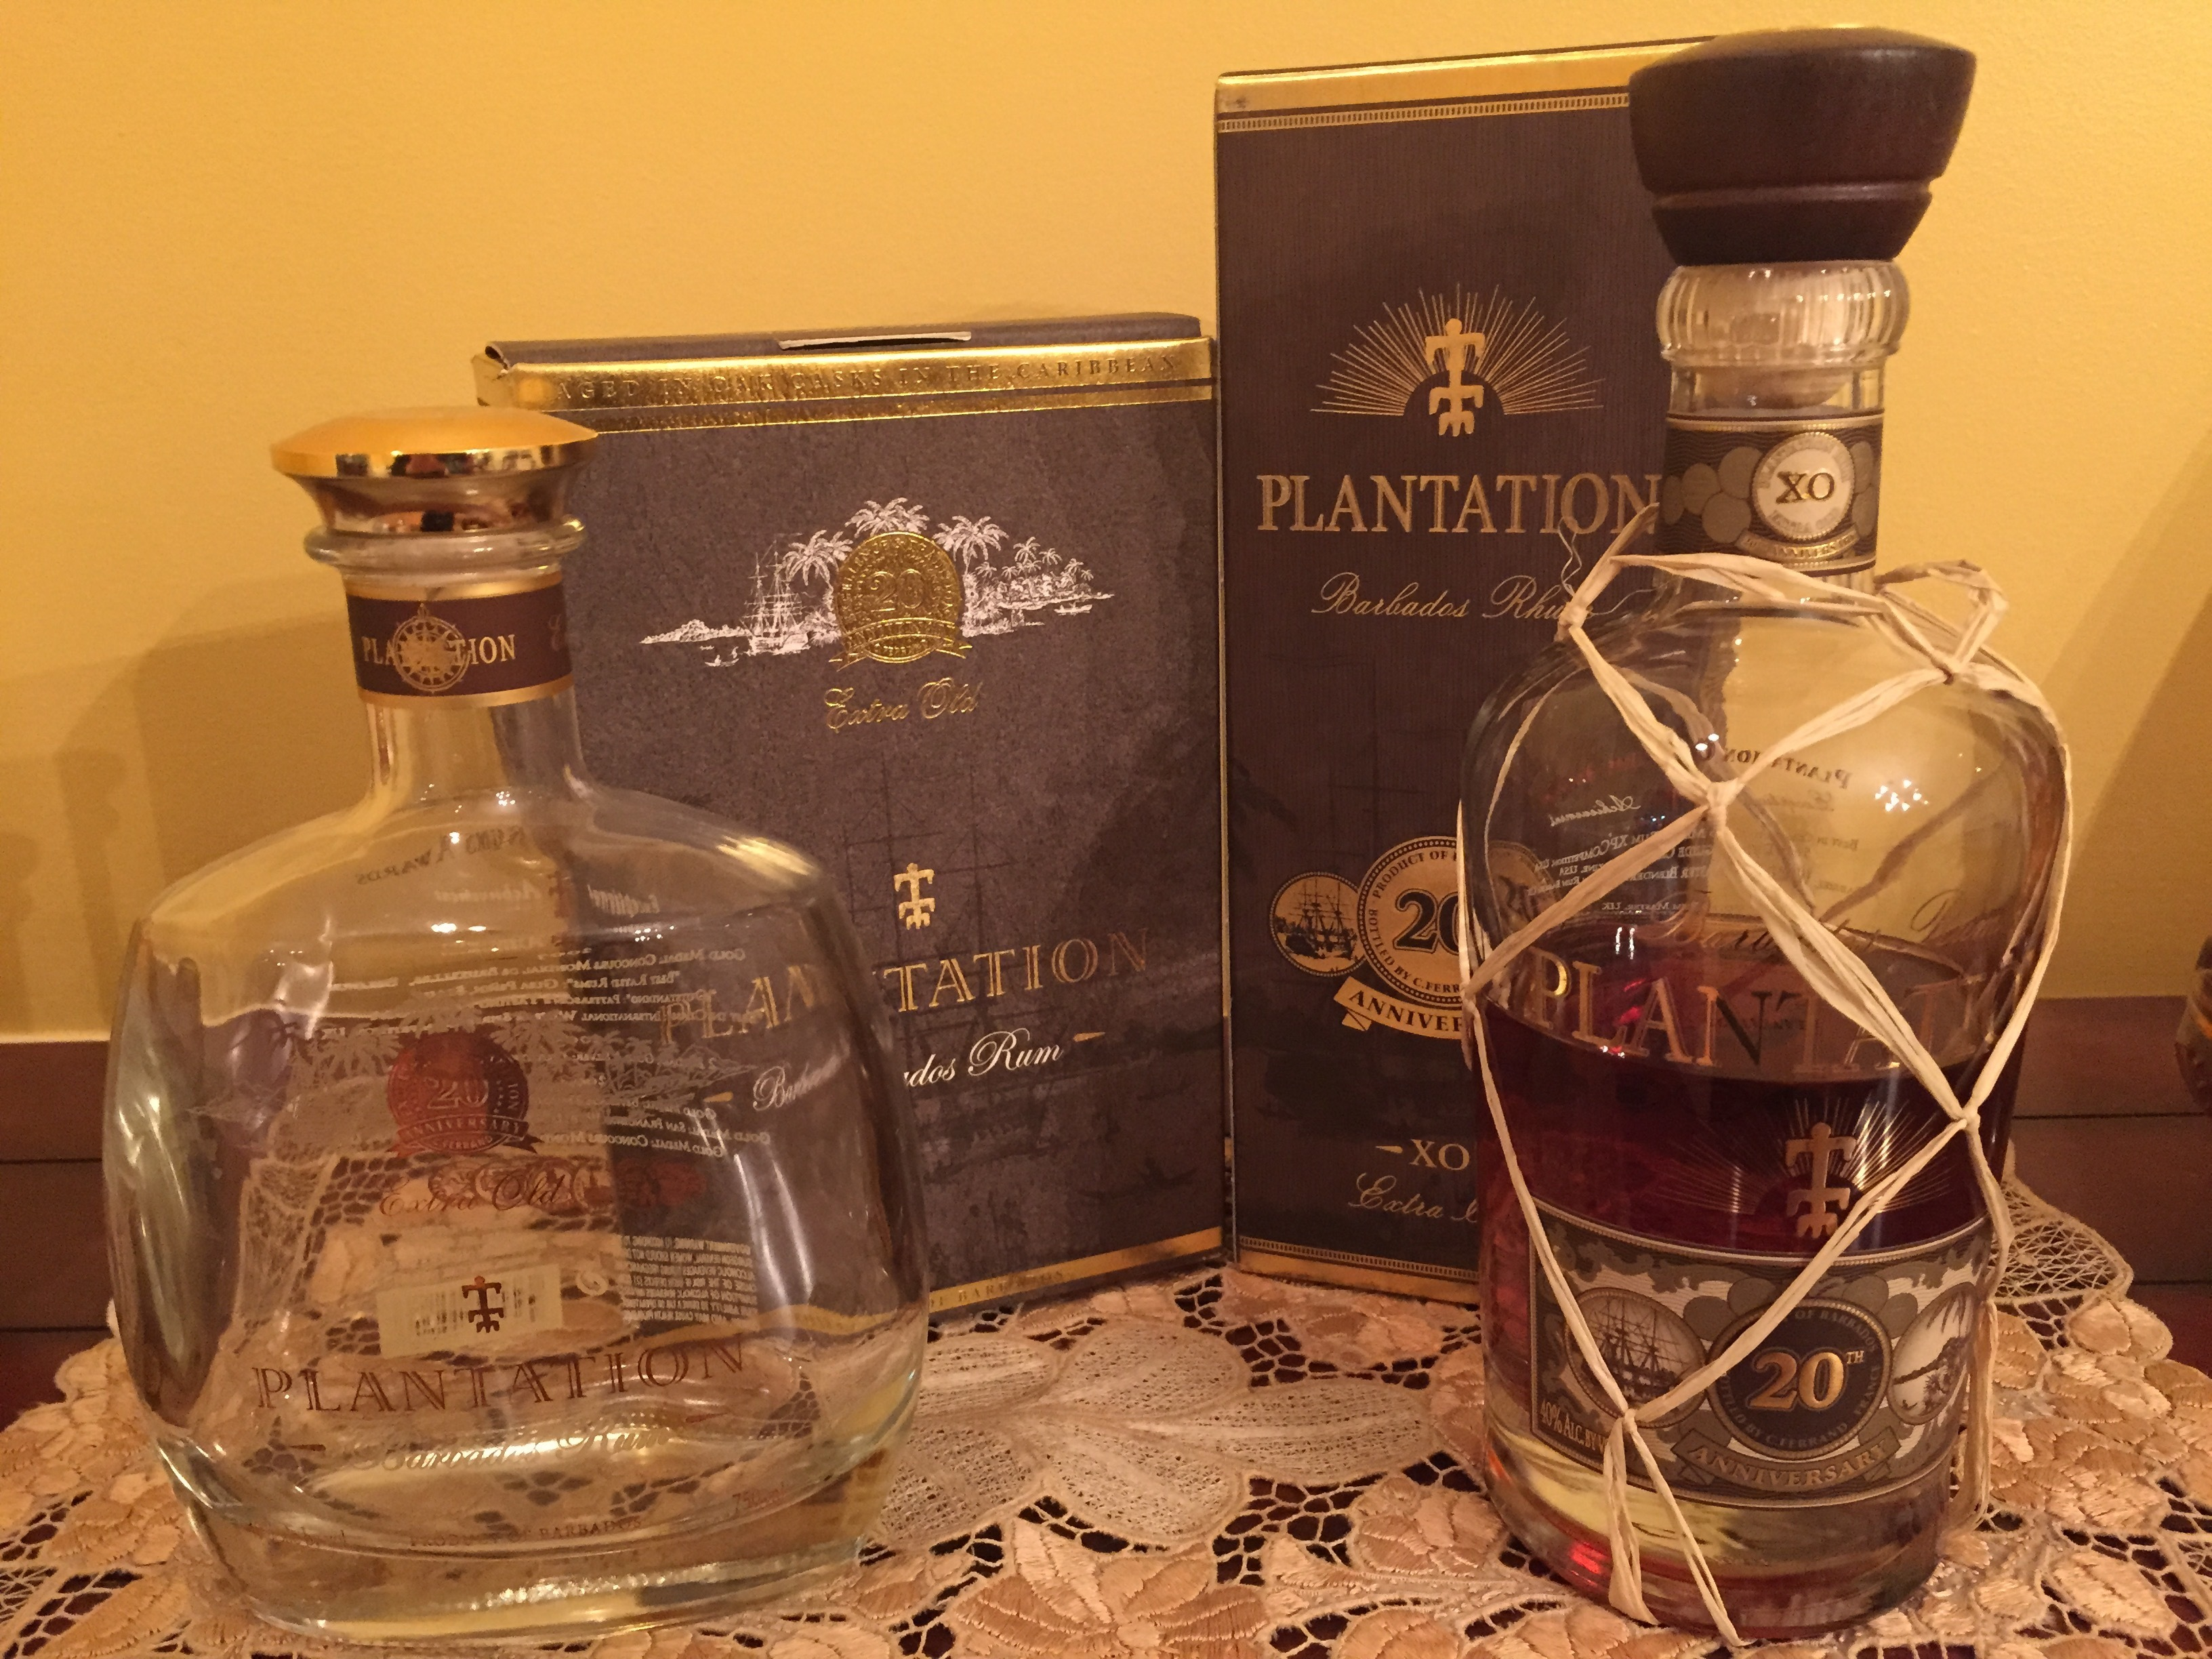 Plantation XO 20th Anniversary (old bottle) | Rum Ratings